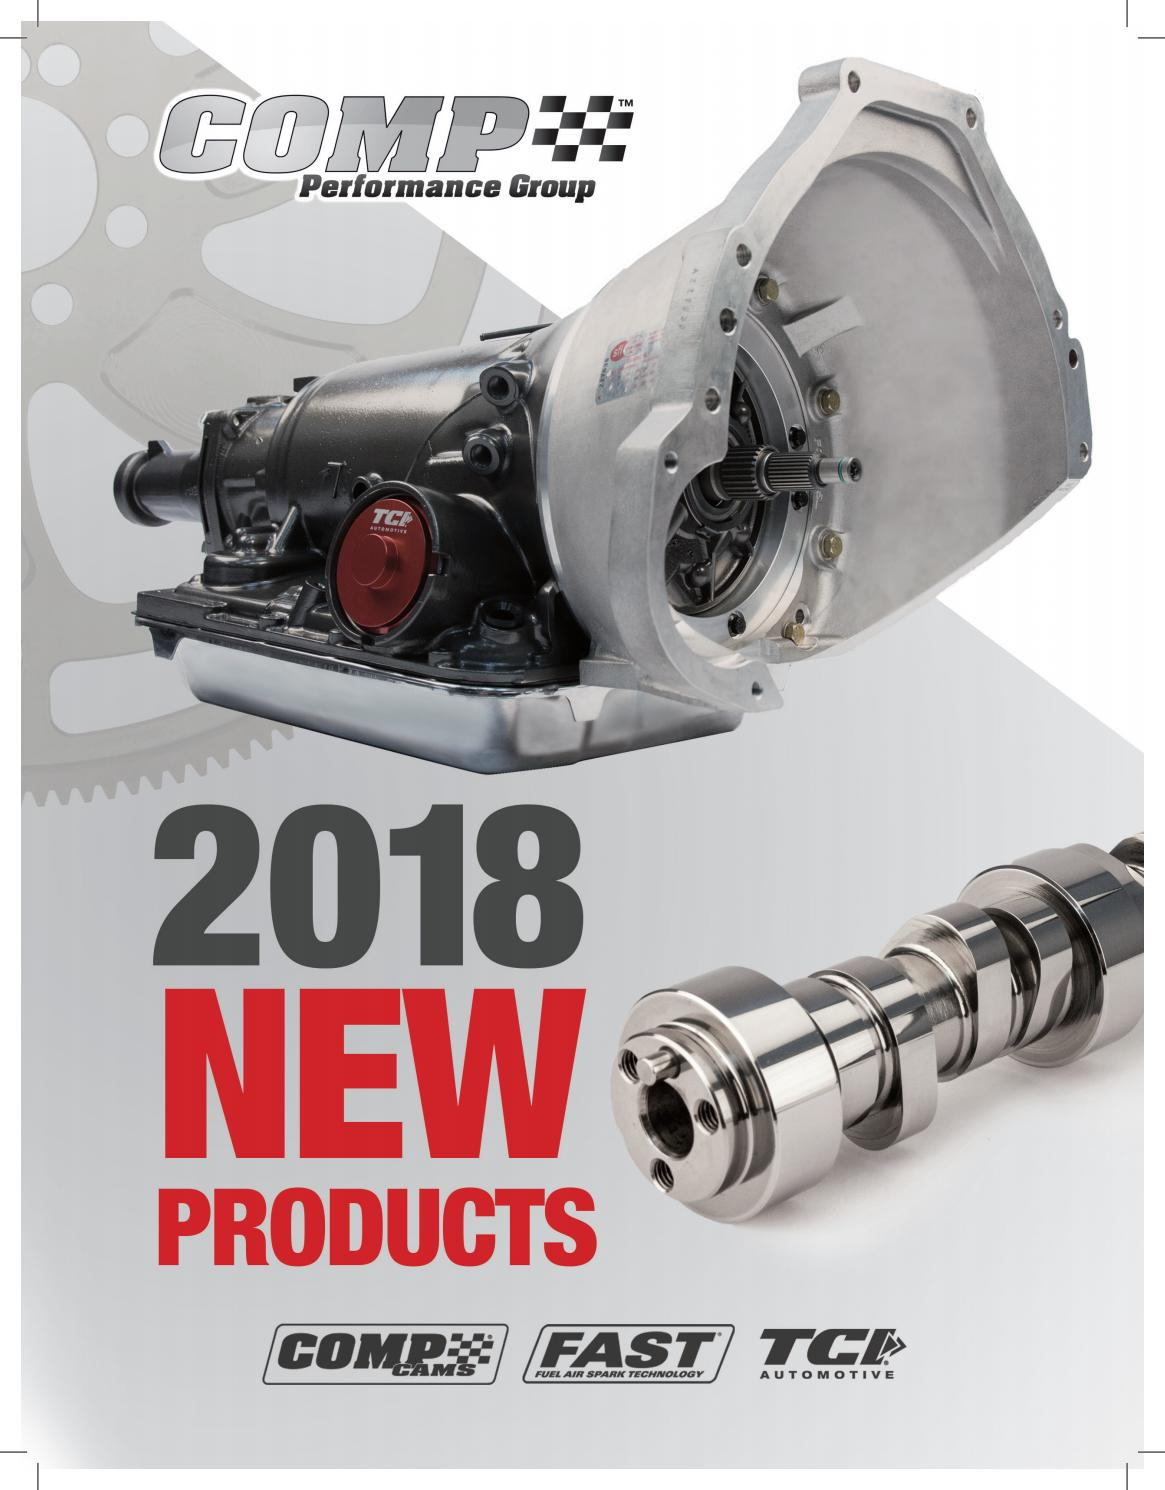 2018 Cpg New Products Brochure By Comp Performance Group Issuu Standalone Wiring Harness Lt1 700r4 For Sale